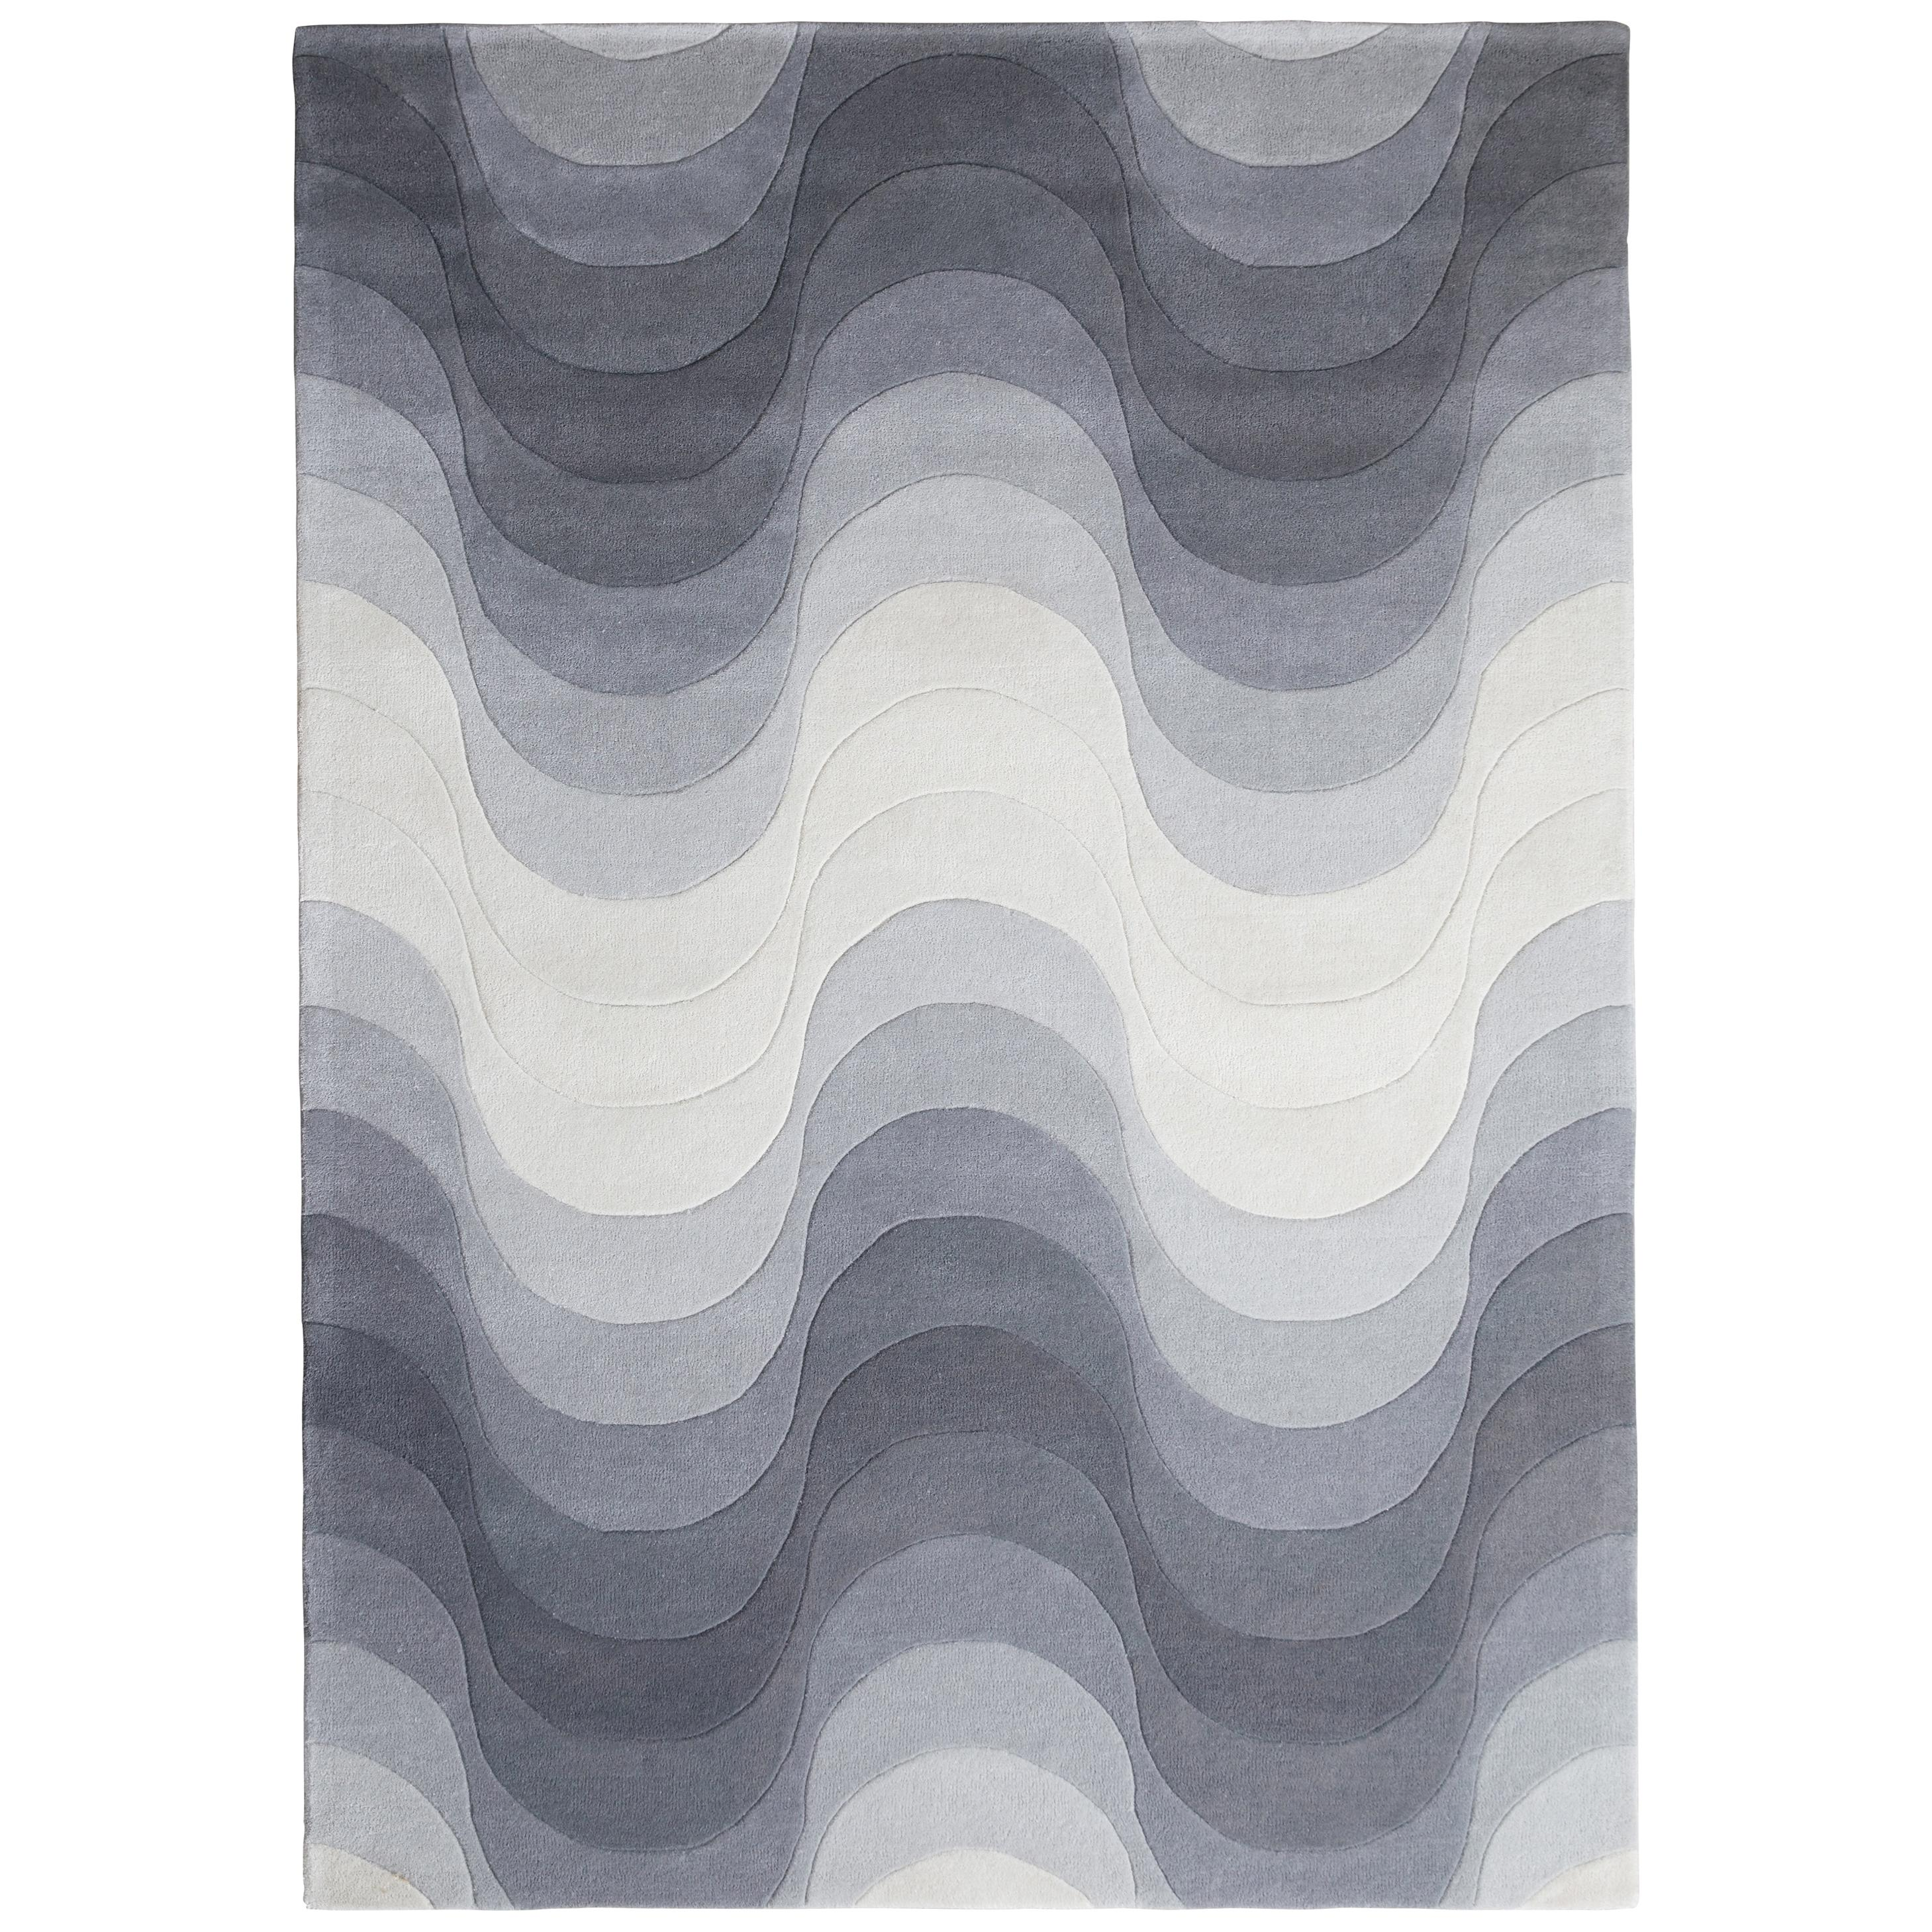 Wave Hand-Tufted Rug in Gray by Verner Panton